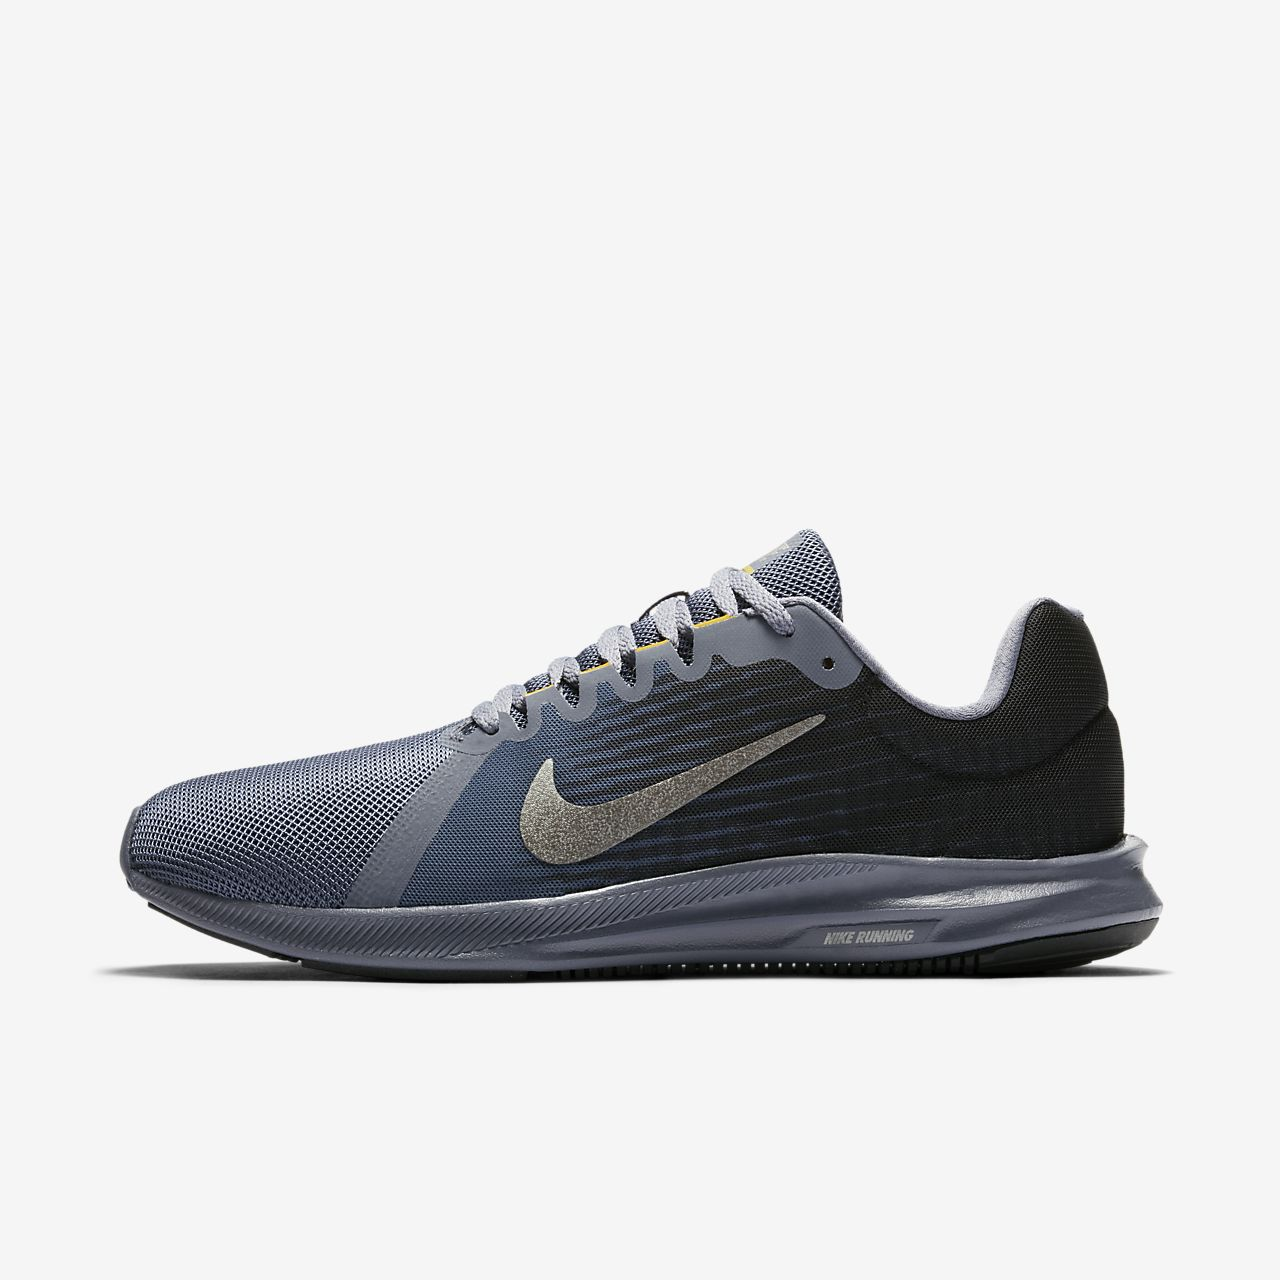 Low Resolution Nike Downshifter 8 férfi futócipő Nike Downshifter 8 férfi  futócipő b7e0cb46d2